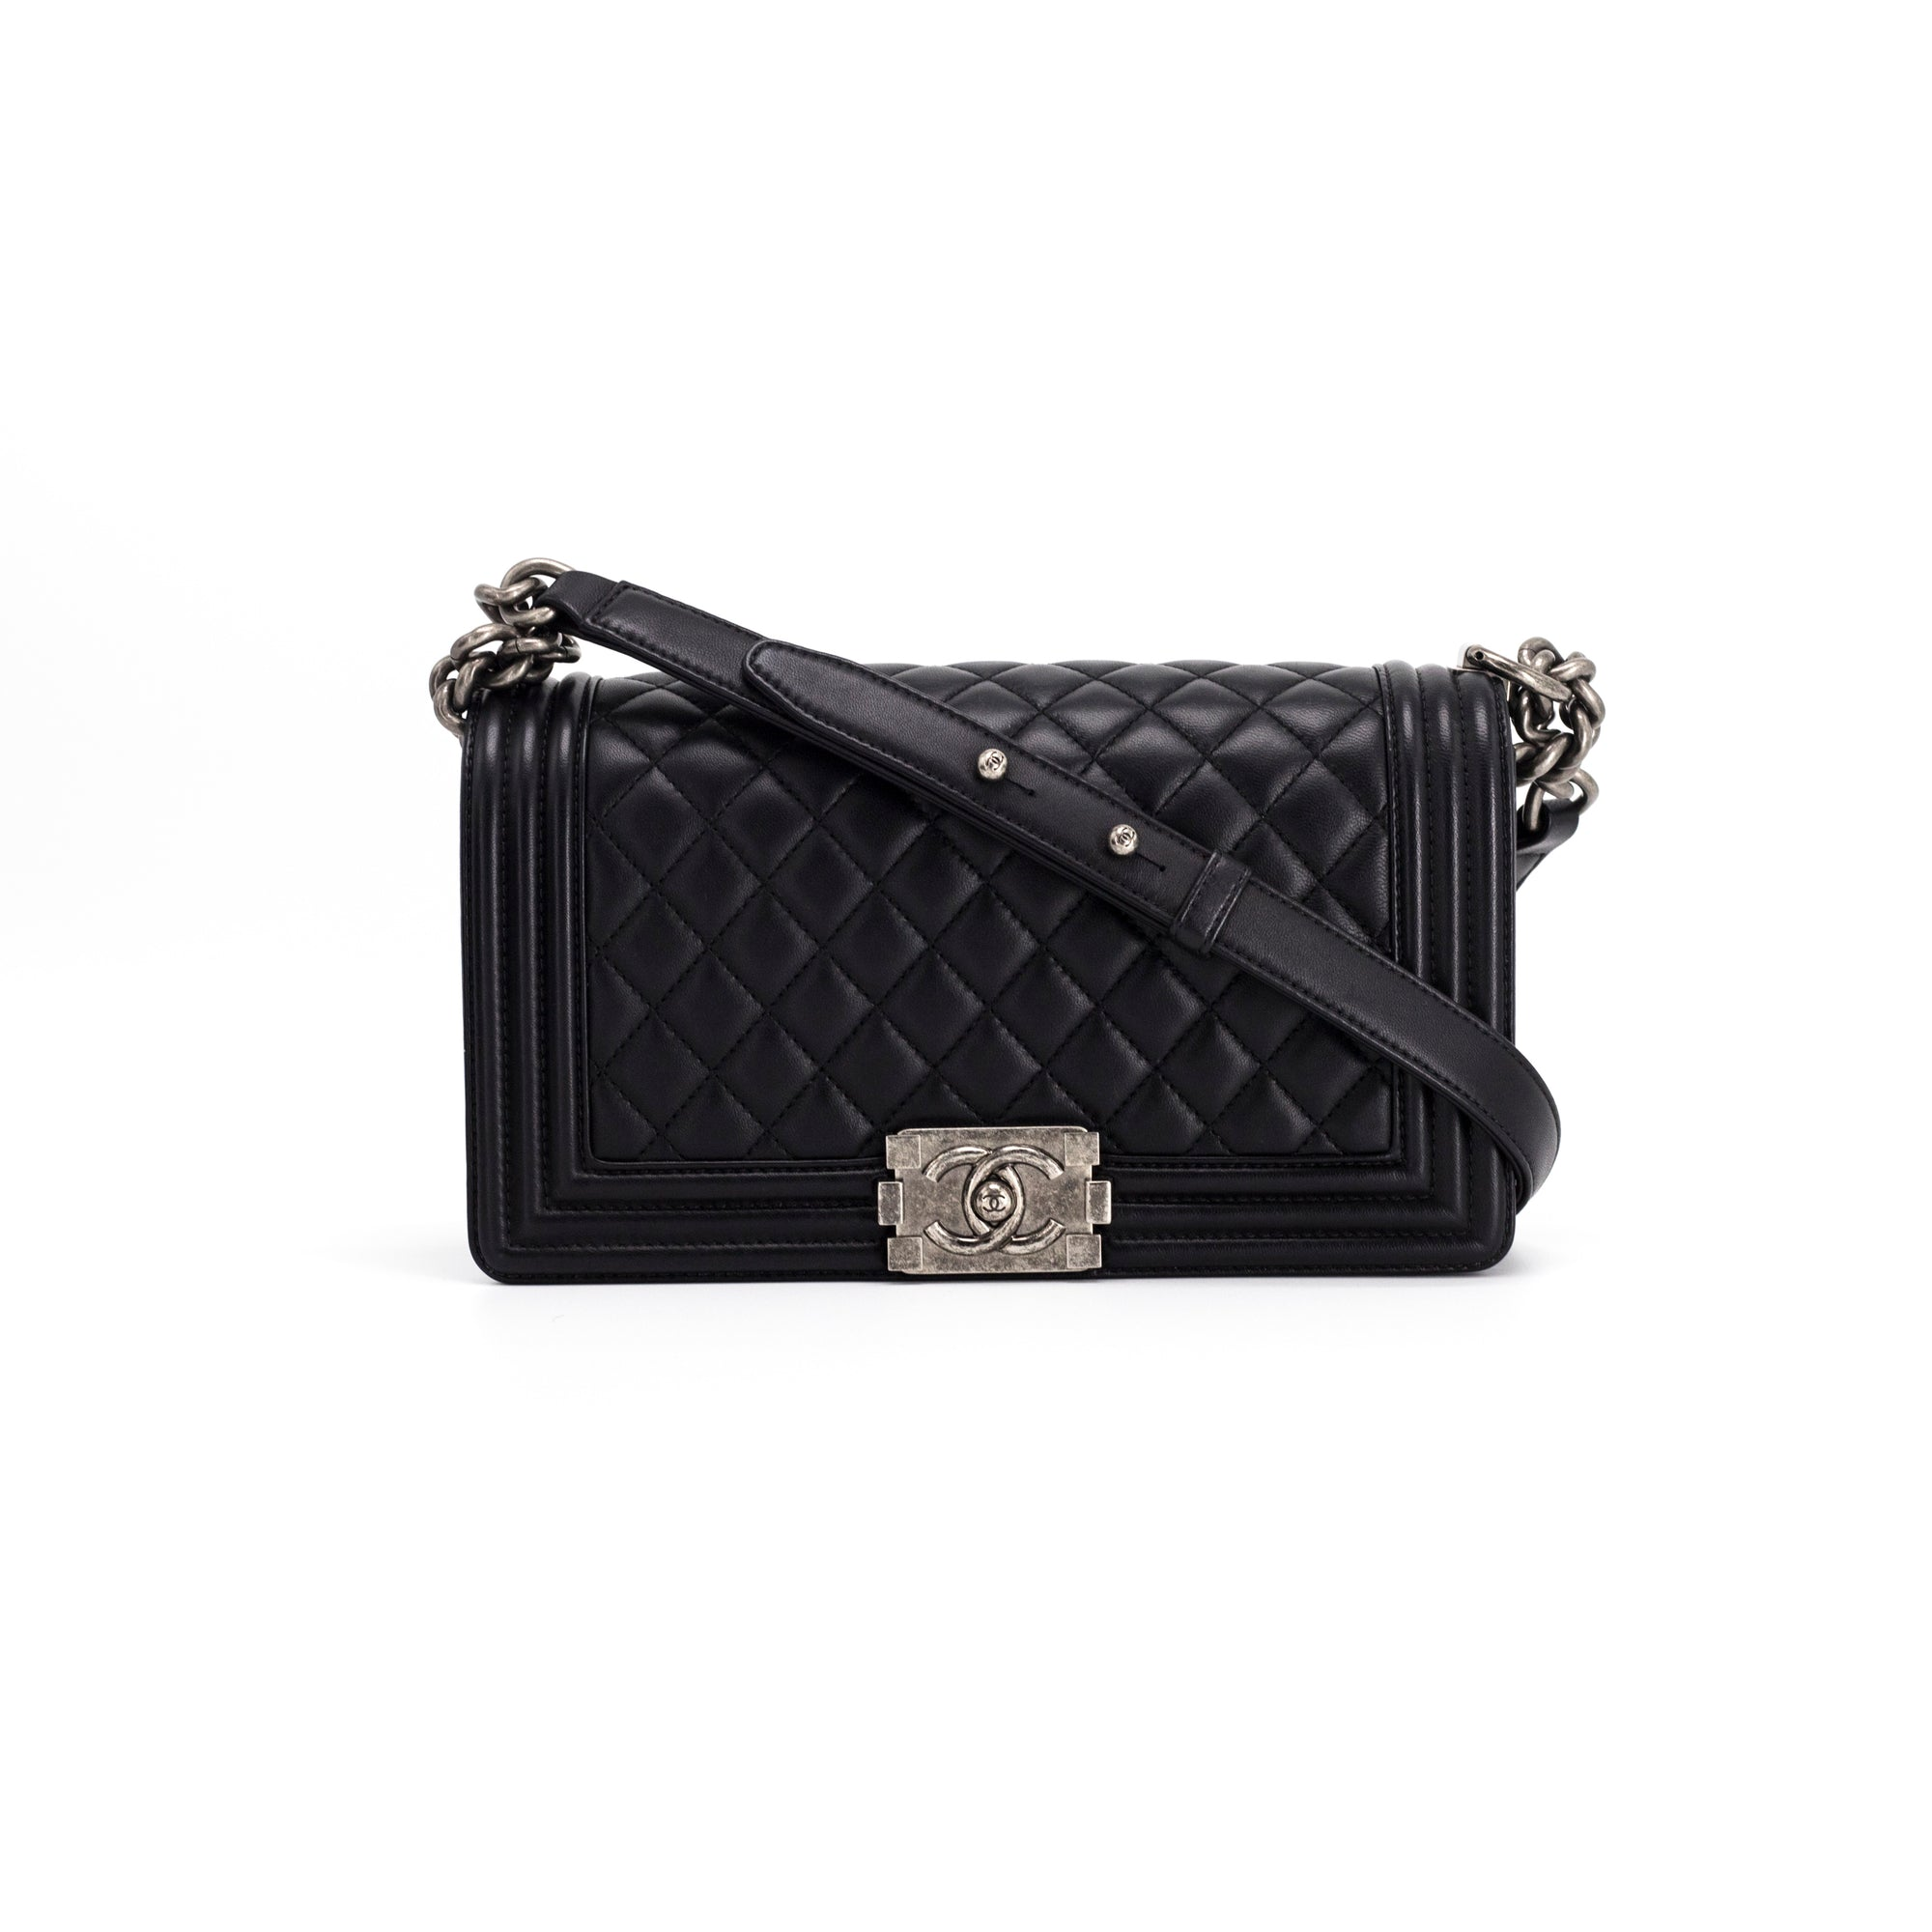 67c147d23793 Chanel Old Medium Black Calfskin RHW BOY - THE PURSE AFFAIR